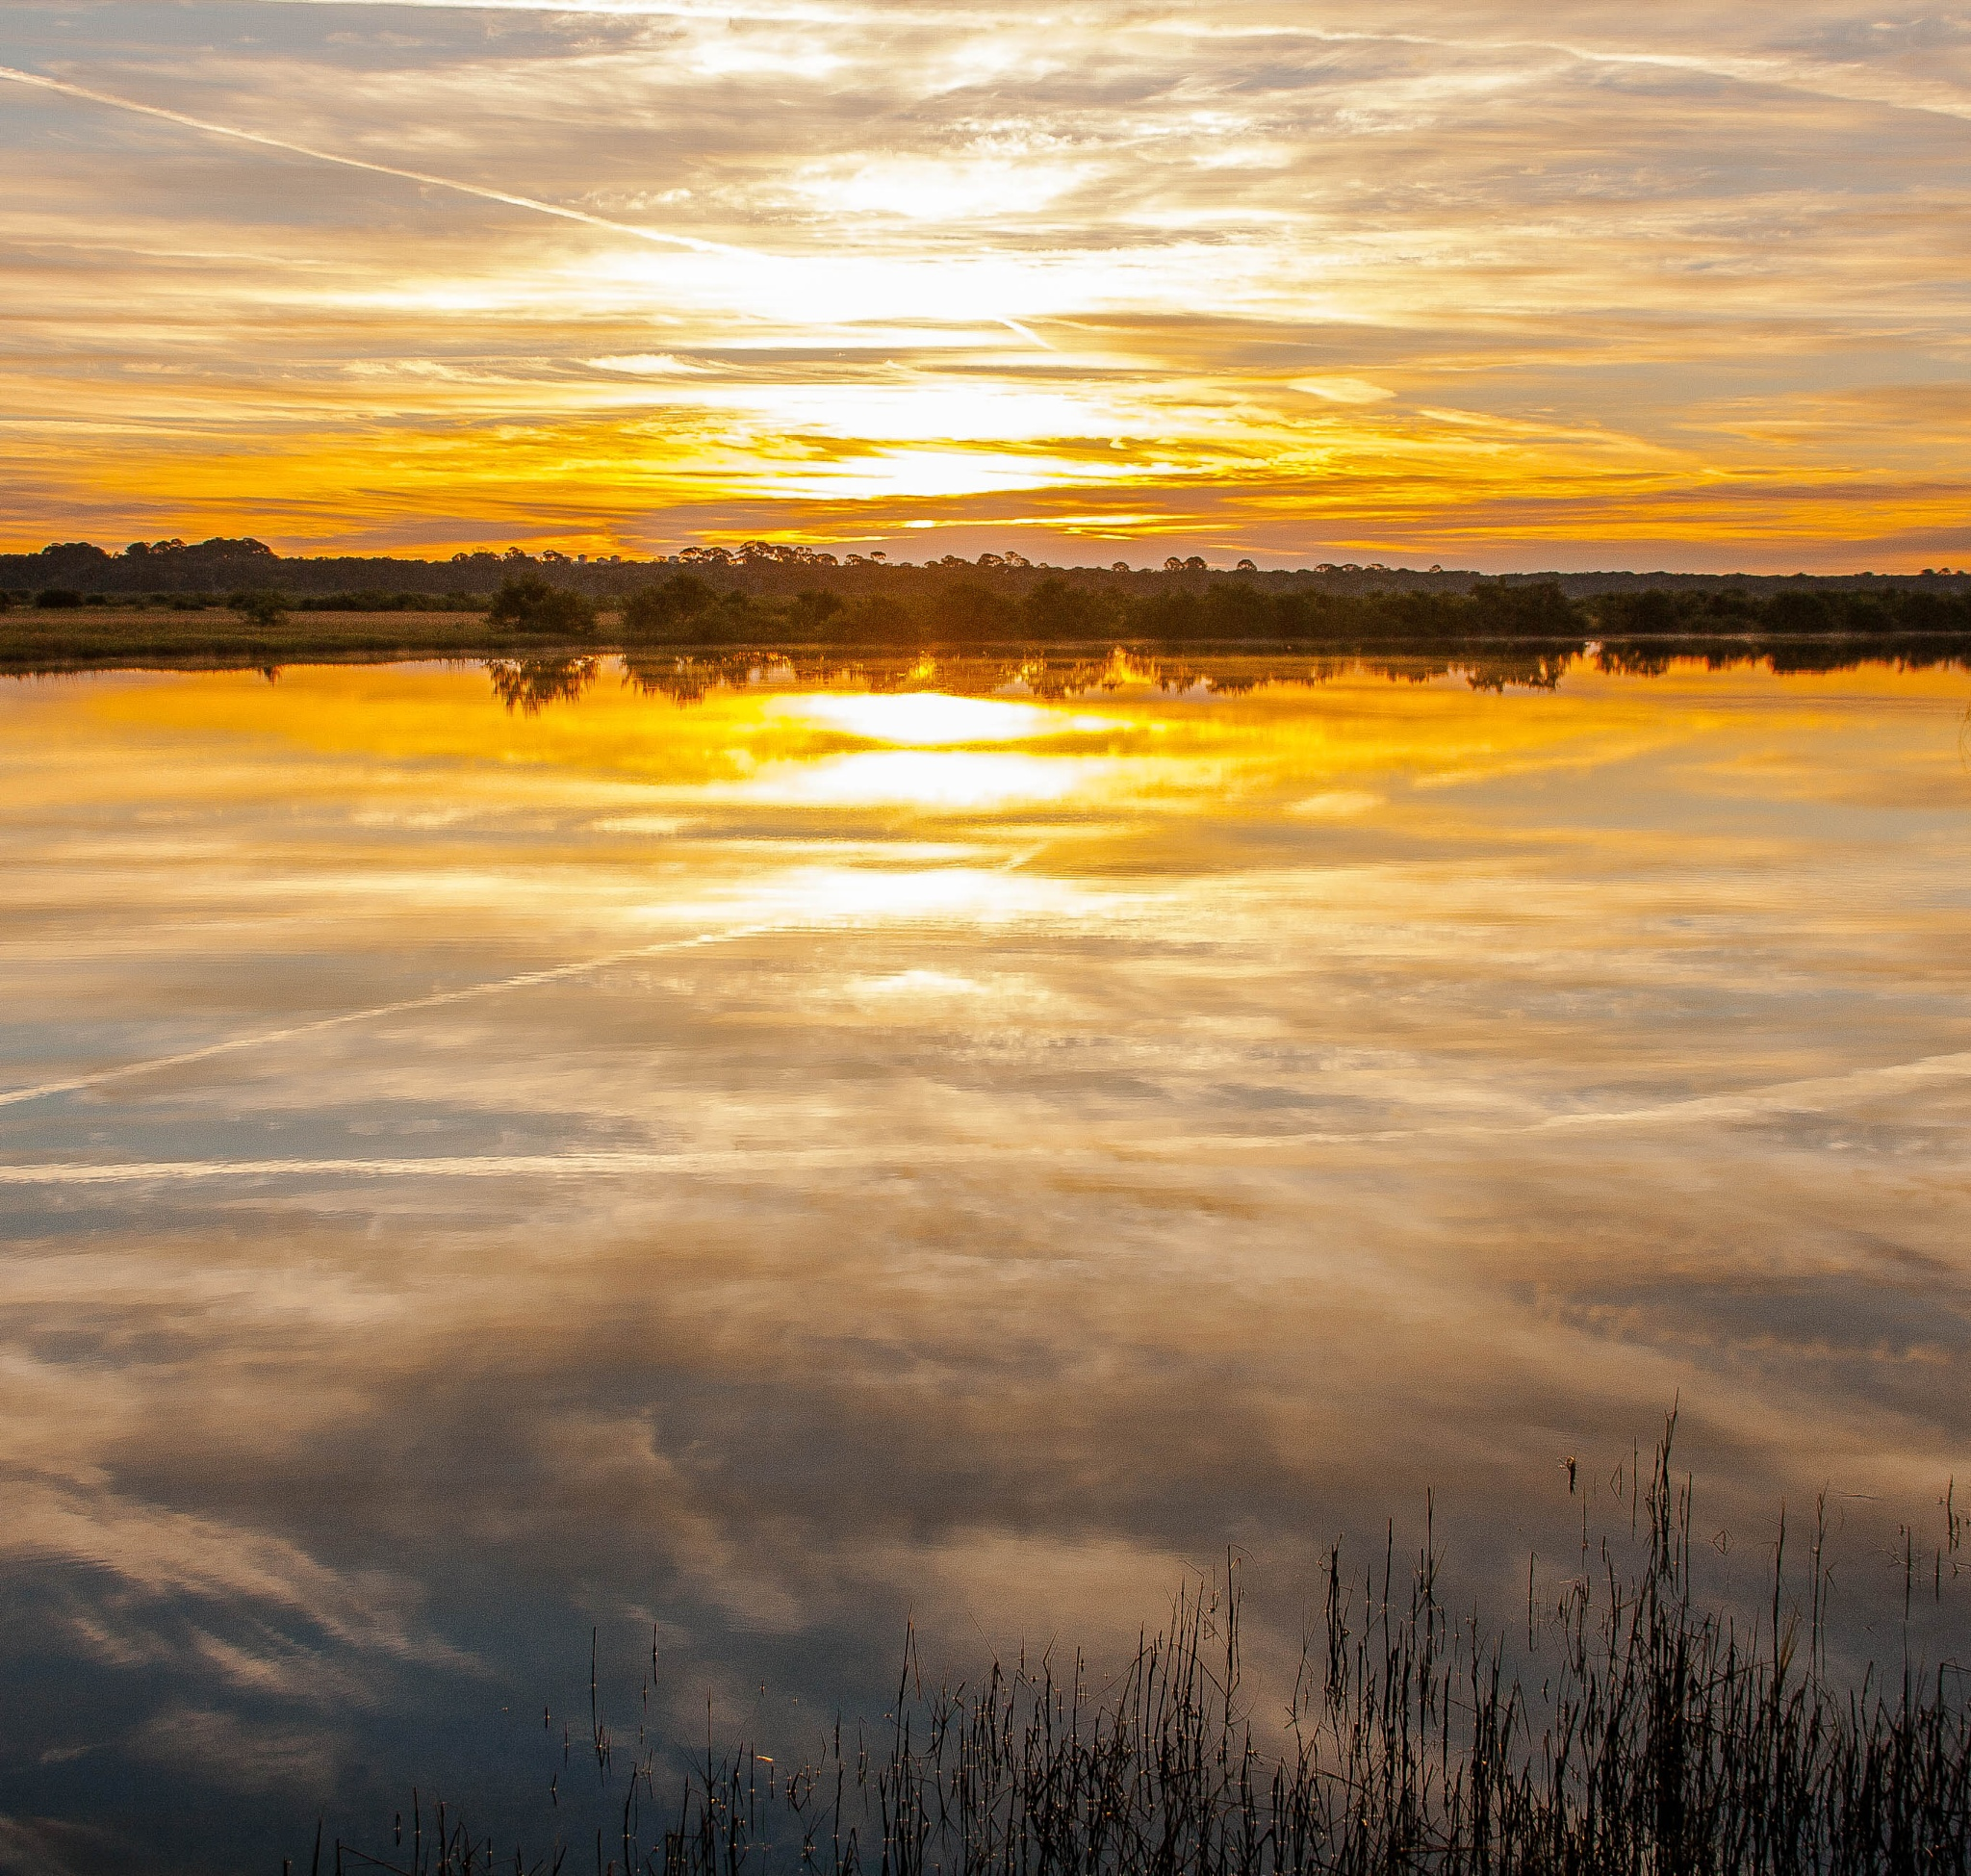 Sunrise Reflection by Peter Cavaliere